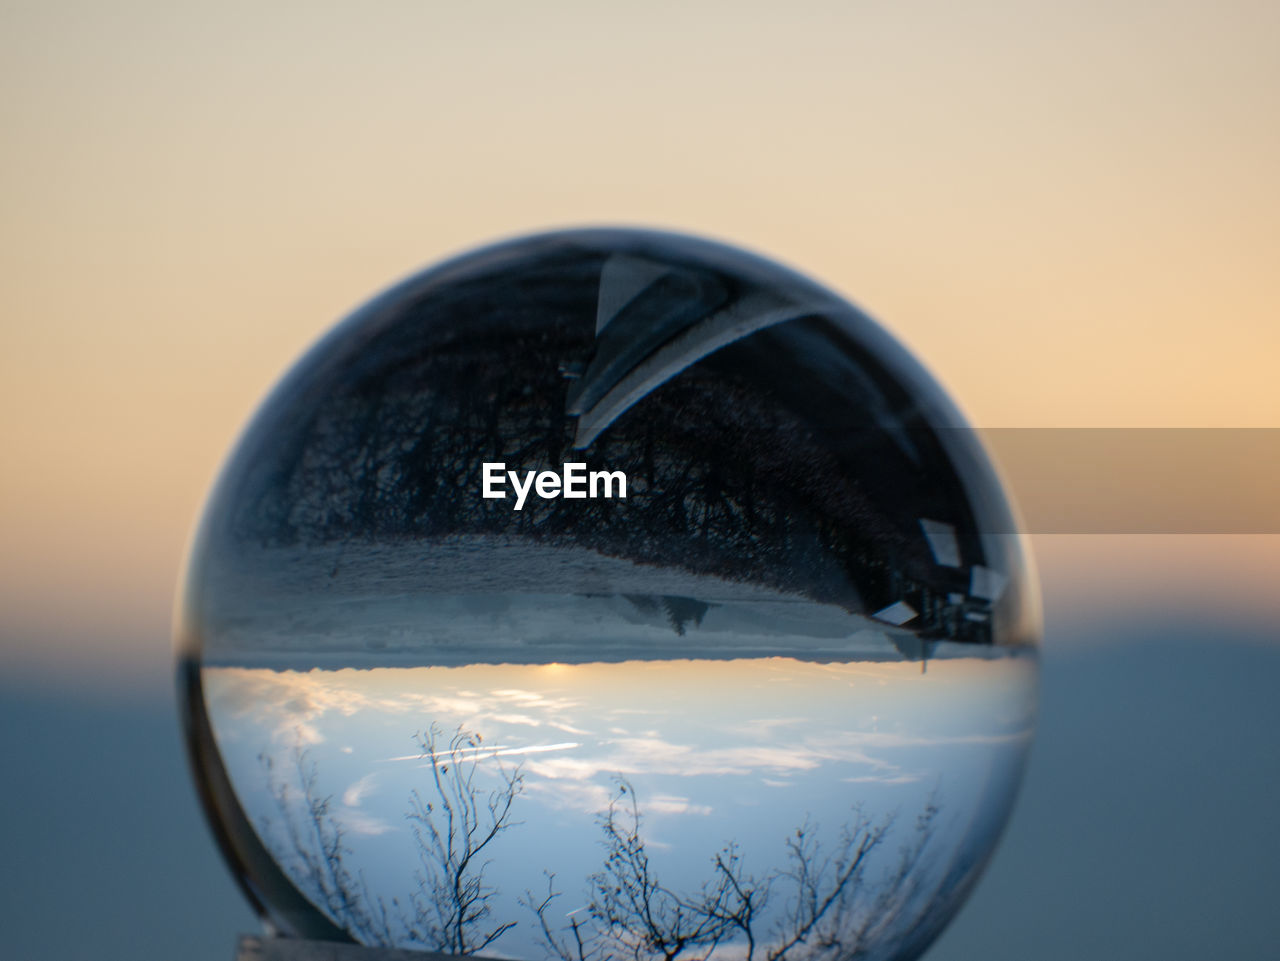 close-up, nature, glass - material, no people, focus on foreground, sky, transparent, reflection, sphere, sunset, still life, crystal ball, outdoors, shape, orange color, copy space, single object, design, geometric shape